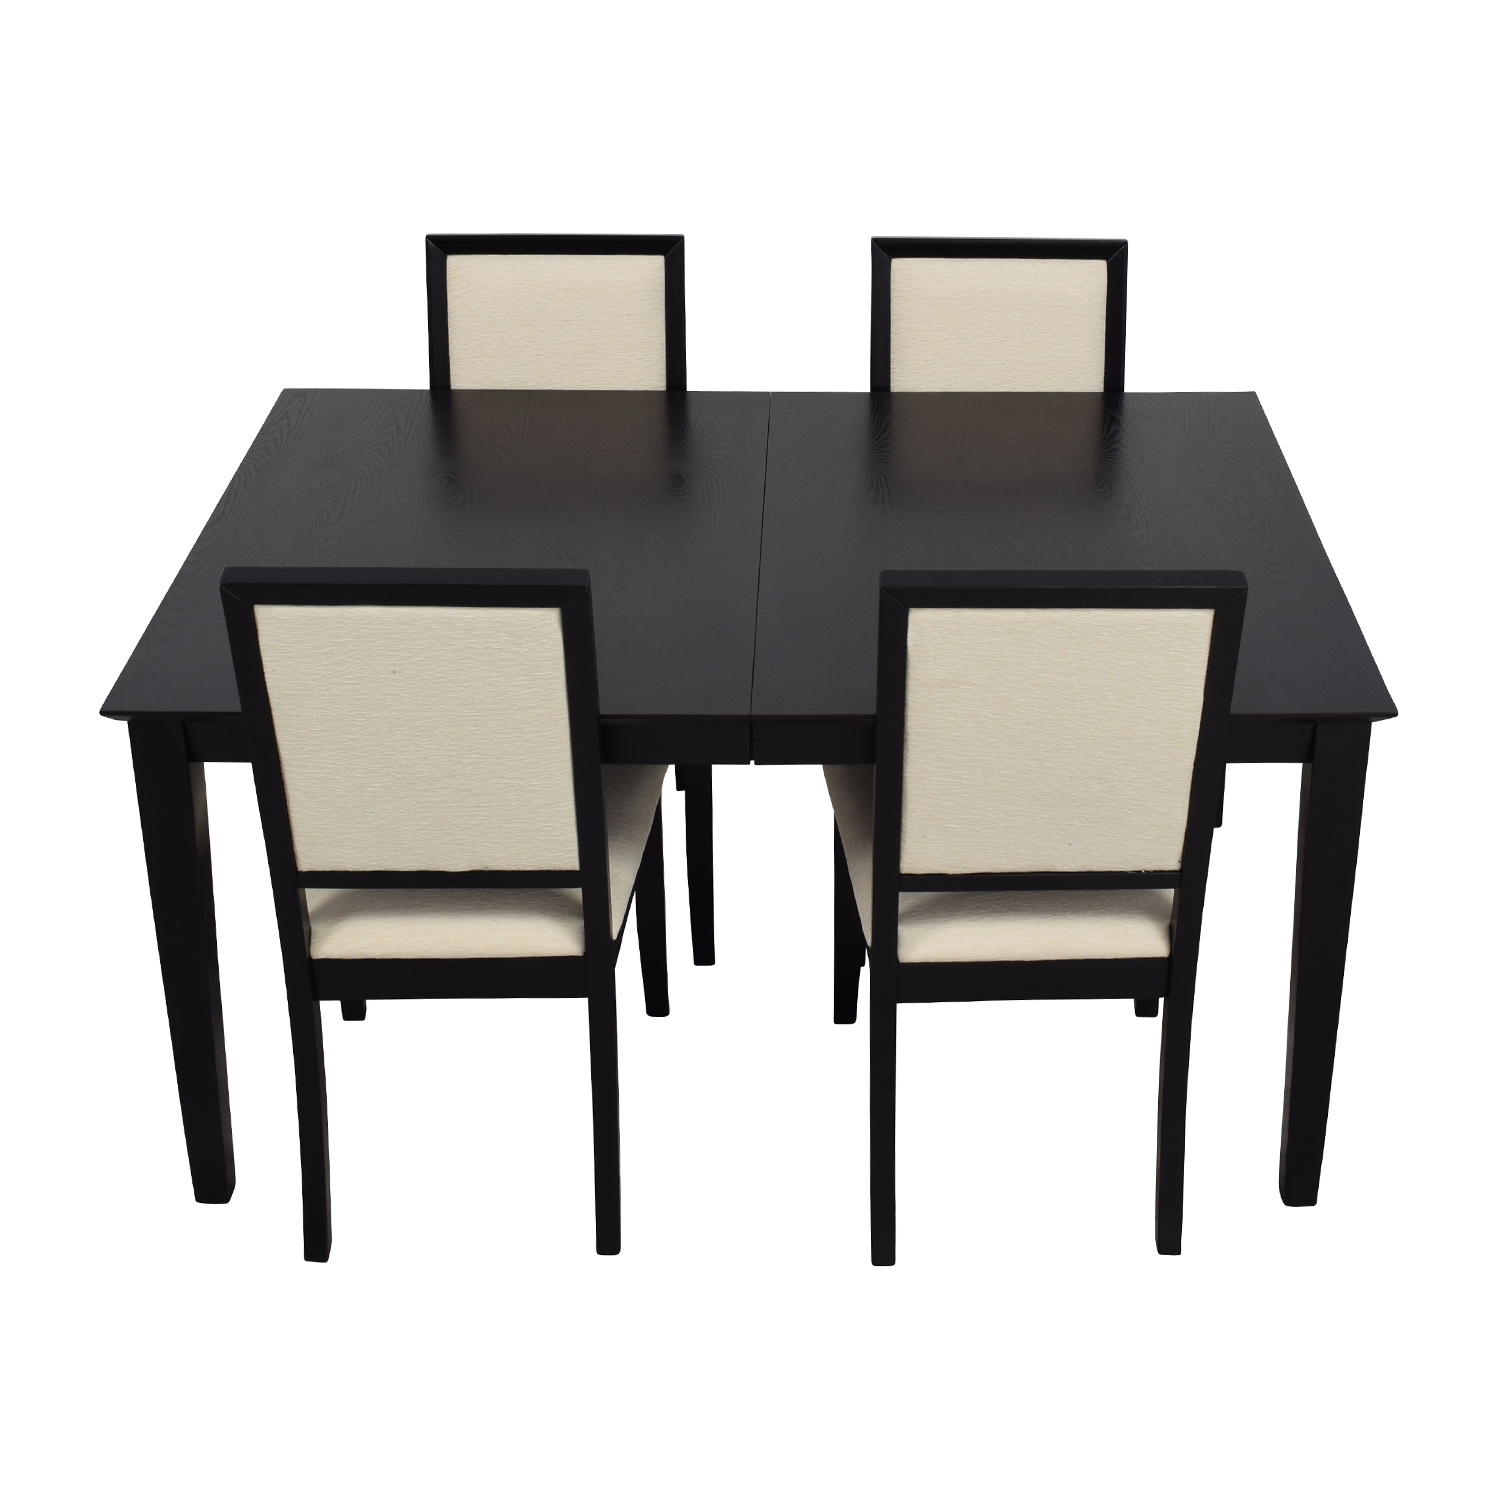 72 off harlem furniture harlem furniture black dining table with four chairs tables. Black Bedroom Furniture Sets. Home Design Ideas